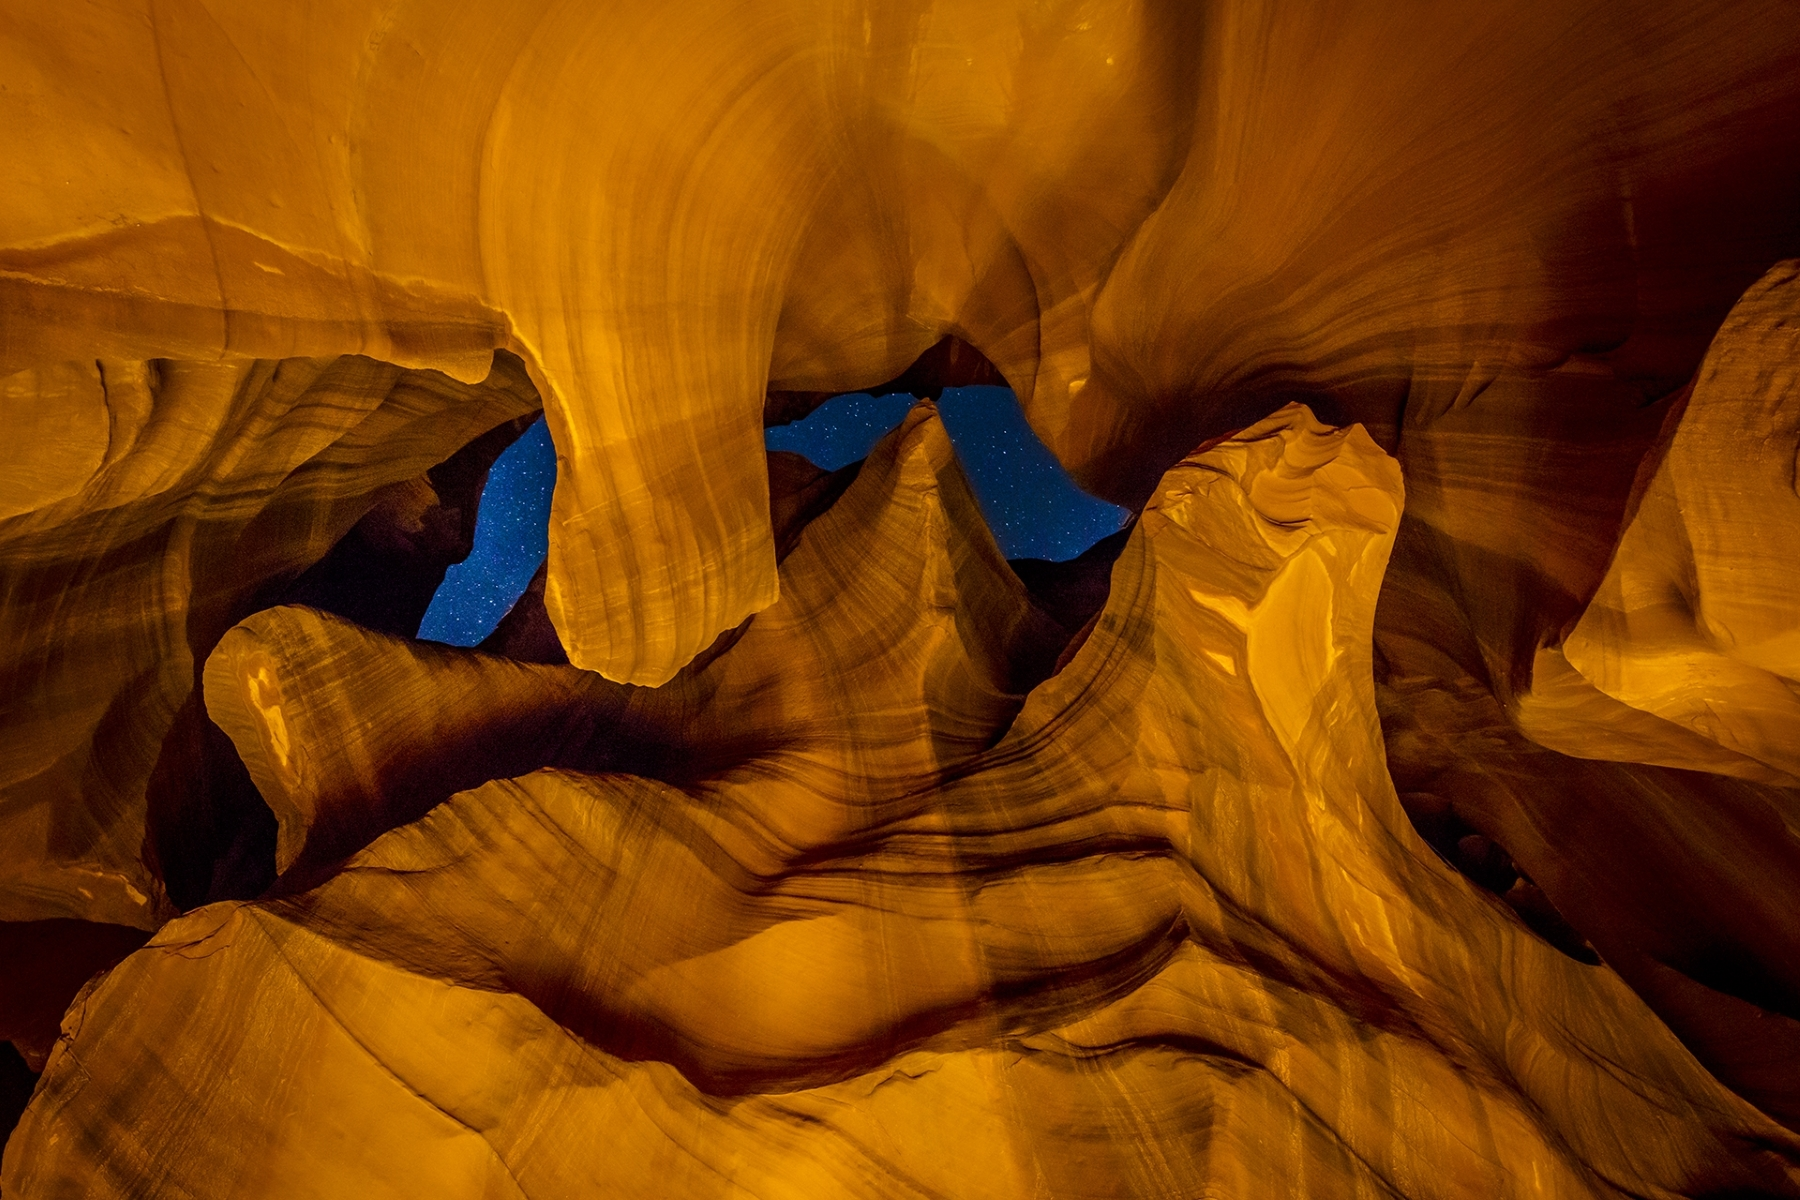 Starry-Night-Antelope-Canyon-PM-Best-in-Show-by-Louis-Cheng-AL